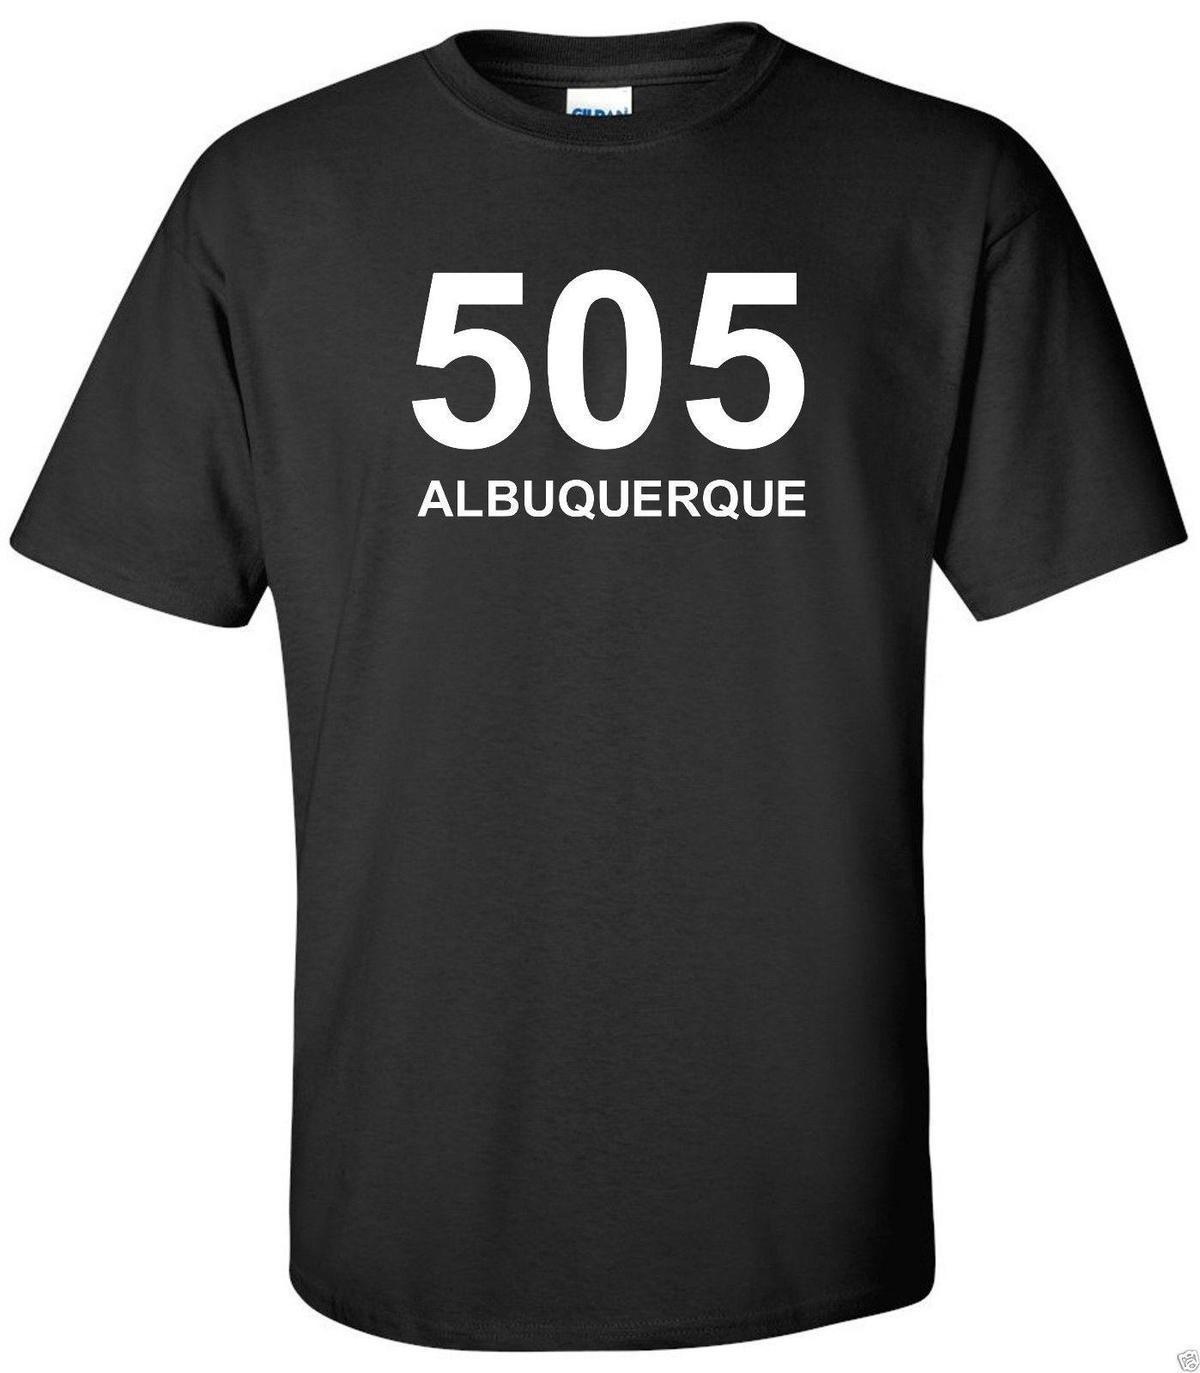 505 Albuquerque Area Code T-Shirt NM New Mexico Shirt